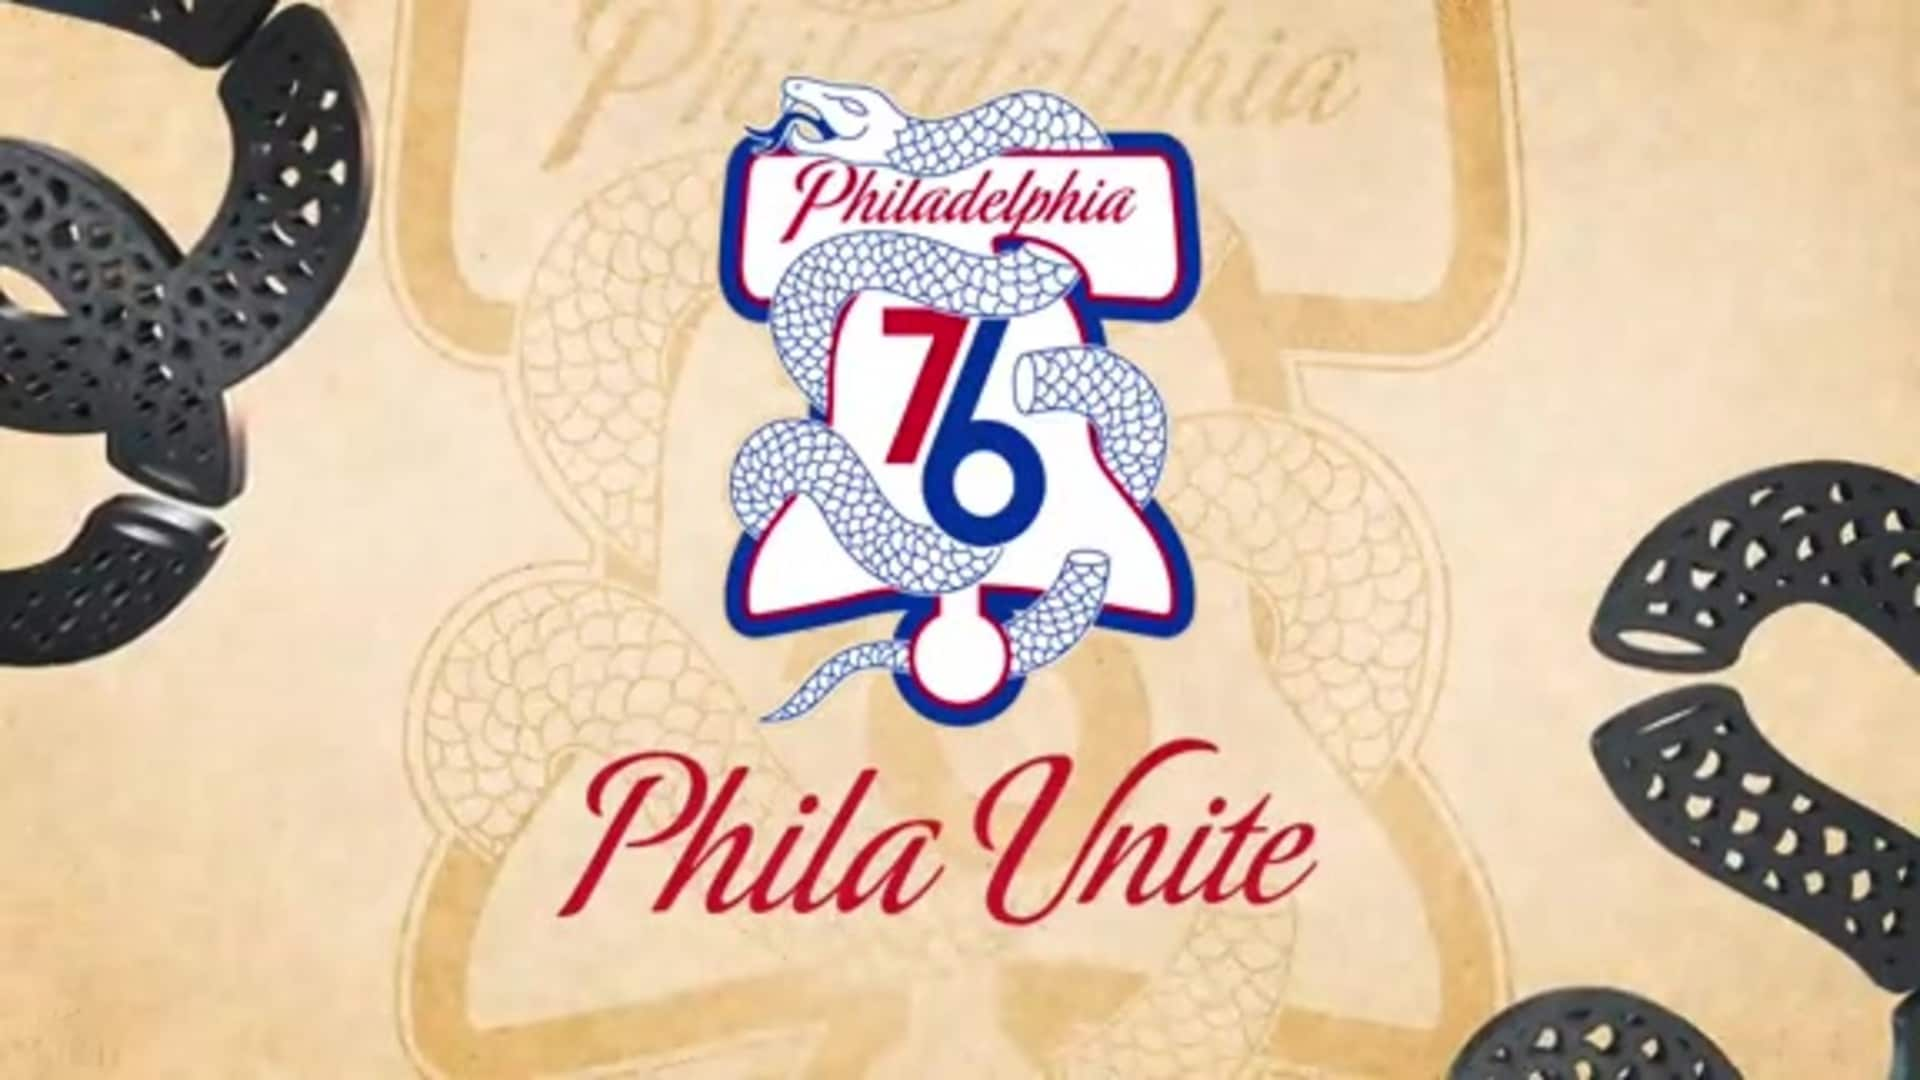 Philadelphia 76ers Playoffs Introduction